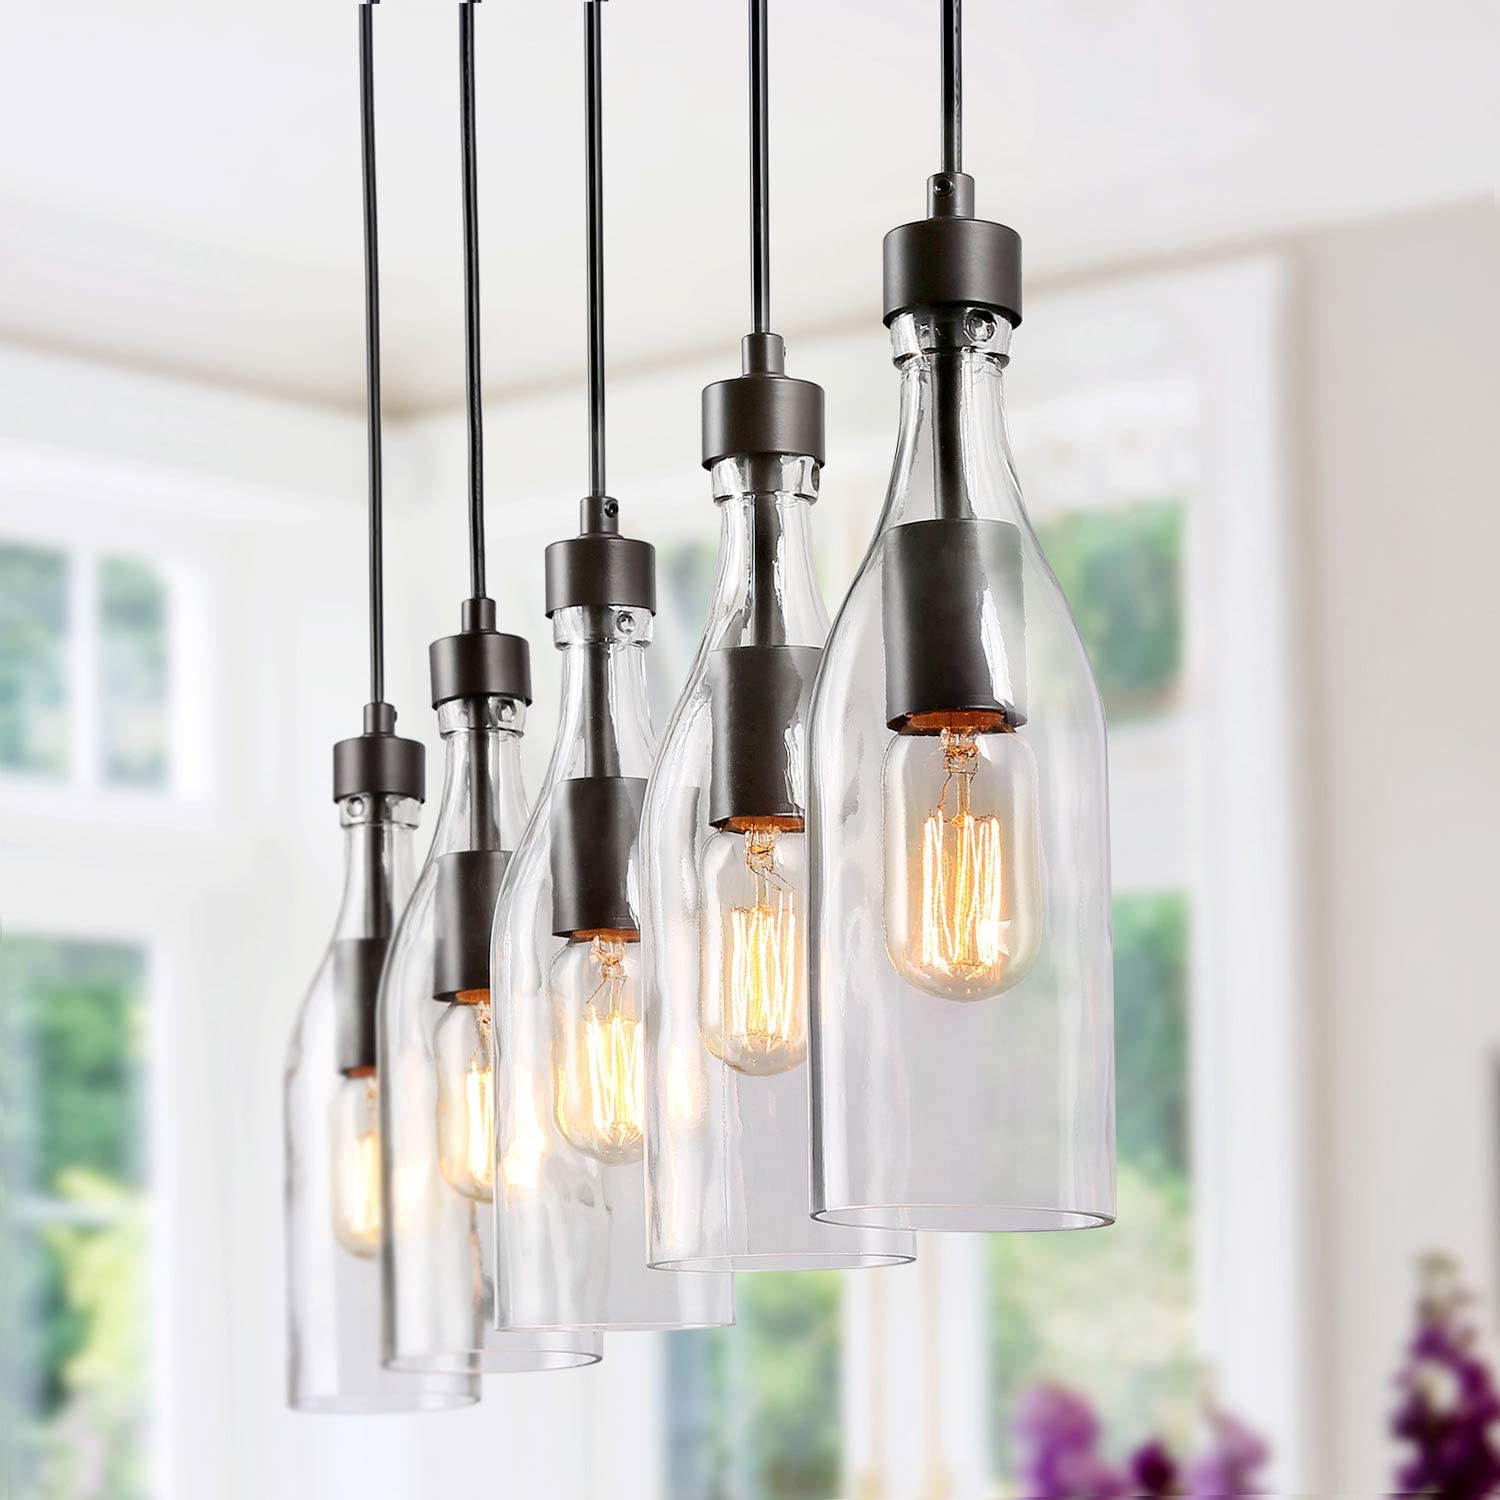 Lnc A02982 Wood Kitchen Island Lighting Farmhouse Linear Chandeliers With Glass Bottle Shade Amazon Com